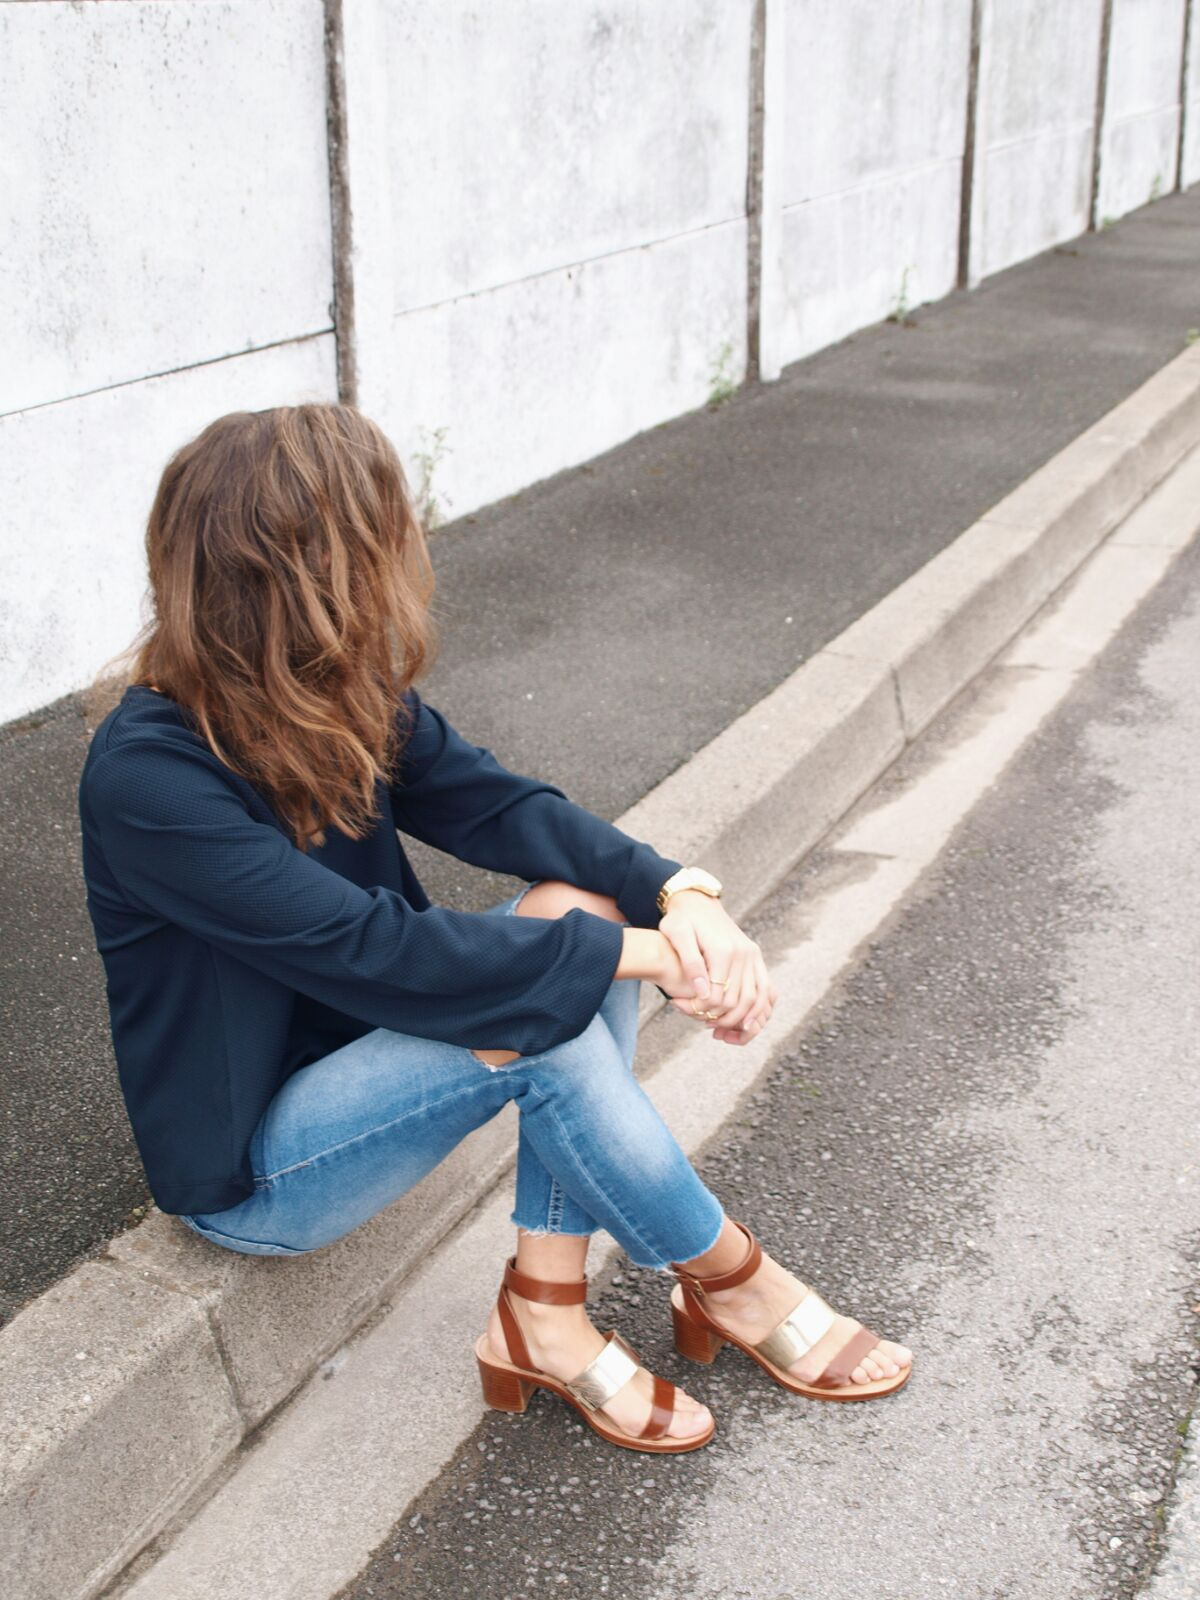 blue-feeling-coastalandco-blog-hendaye-paysbasque-fashion-mode-beaute-jeans-destroy-girl-boheme-casual-hair-smile-blogspot-blogger-zara-asos